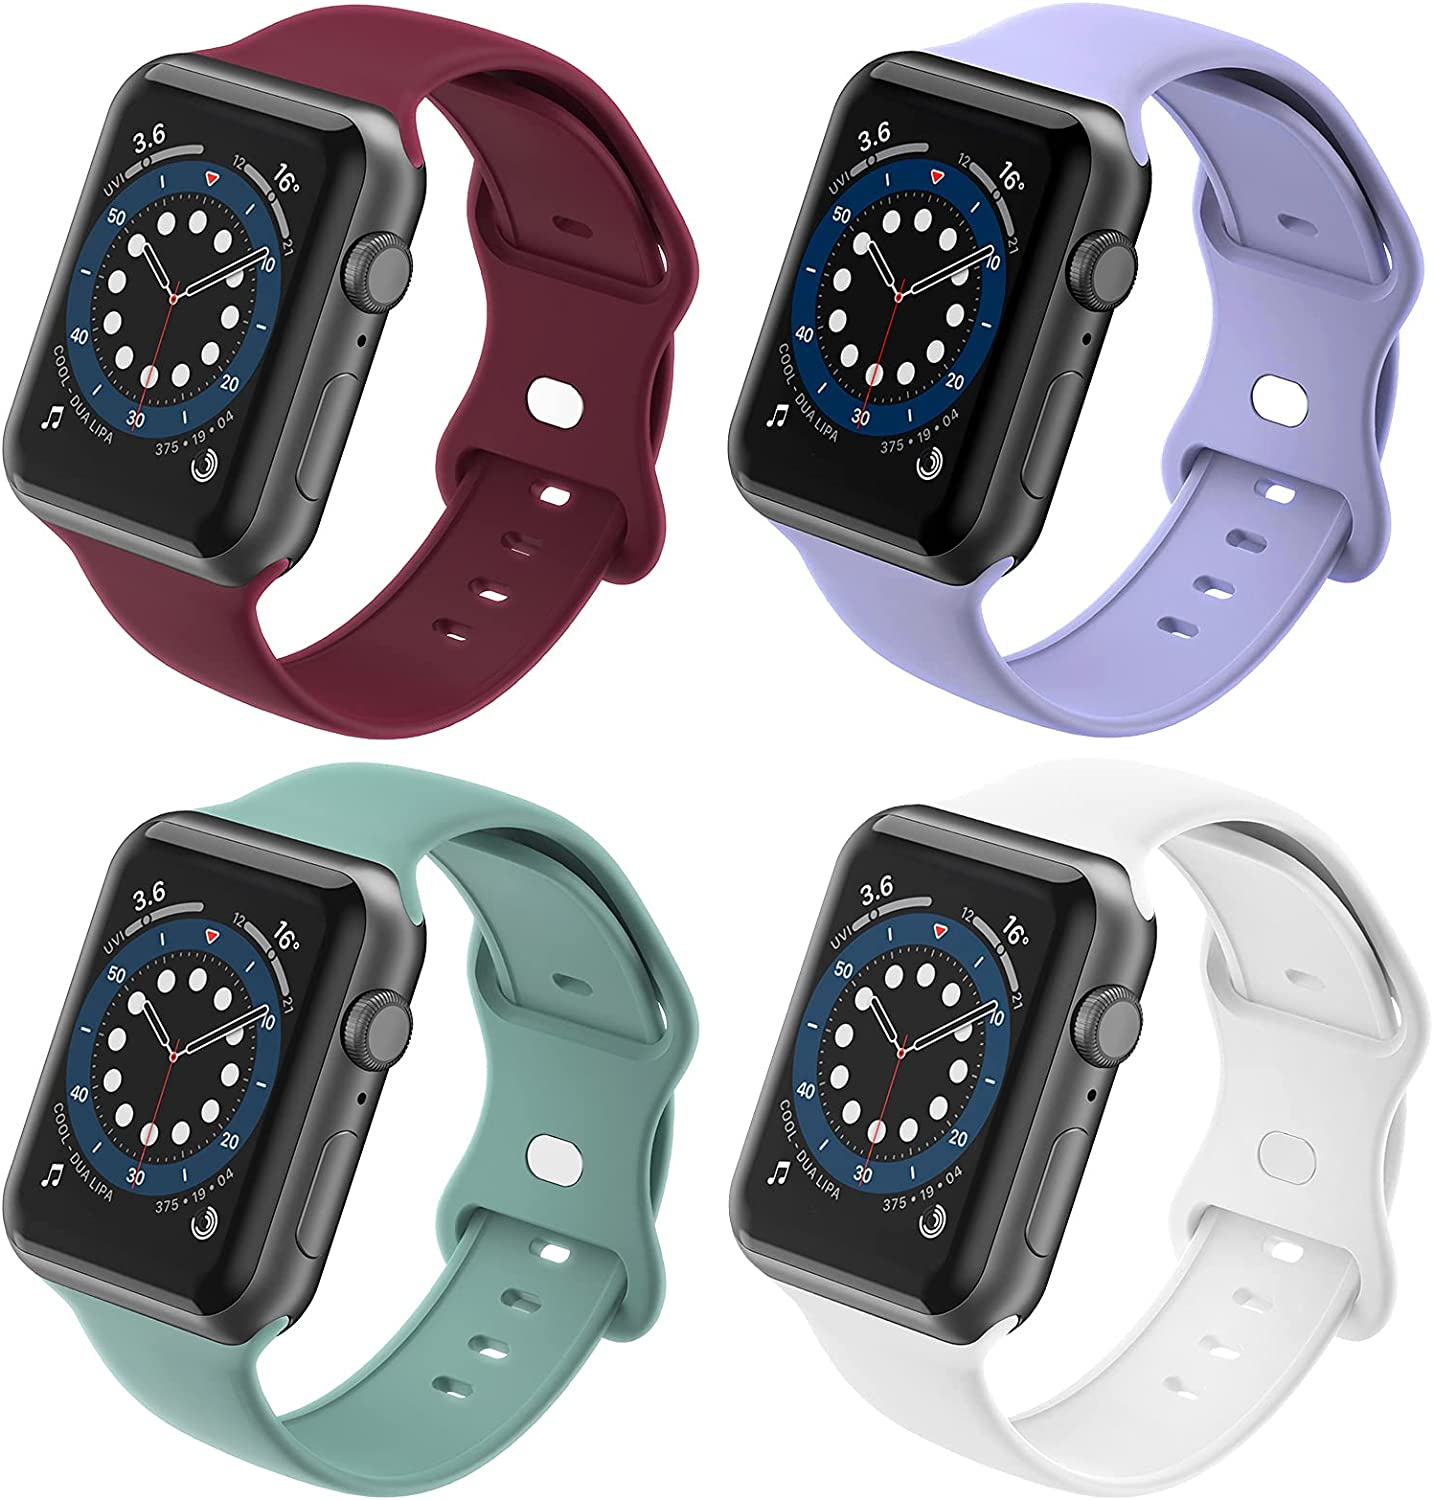 TopBang Compatible with Apple Watch Bands 38mm 40mm 42mm 44mm, Soft Silicone Sports Replacement Straps Women Men for iWatch Series 6 5 4 3 2 1 SE, Sport Edition